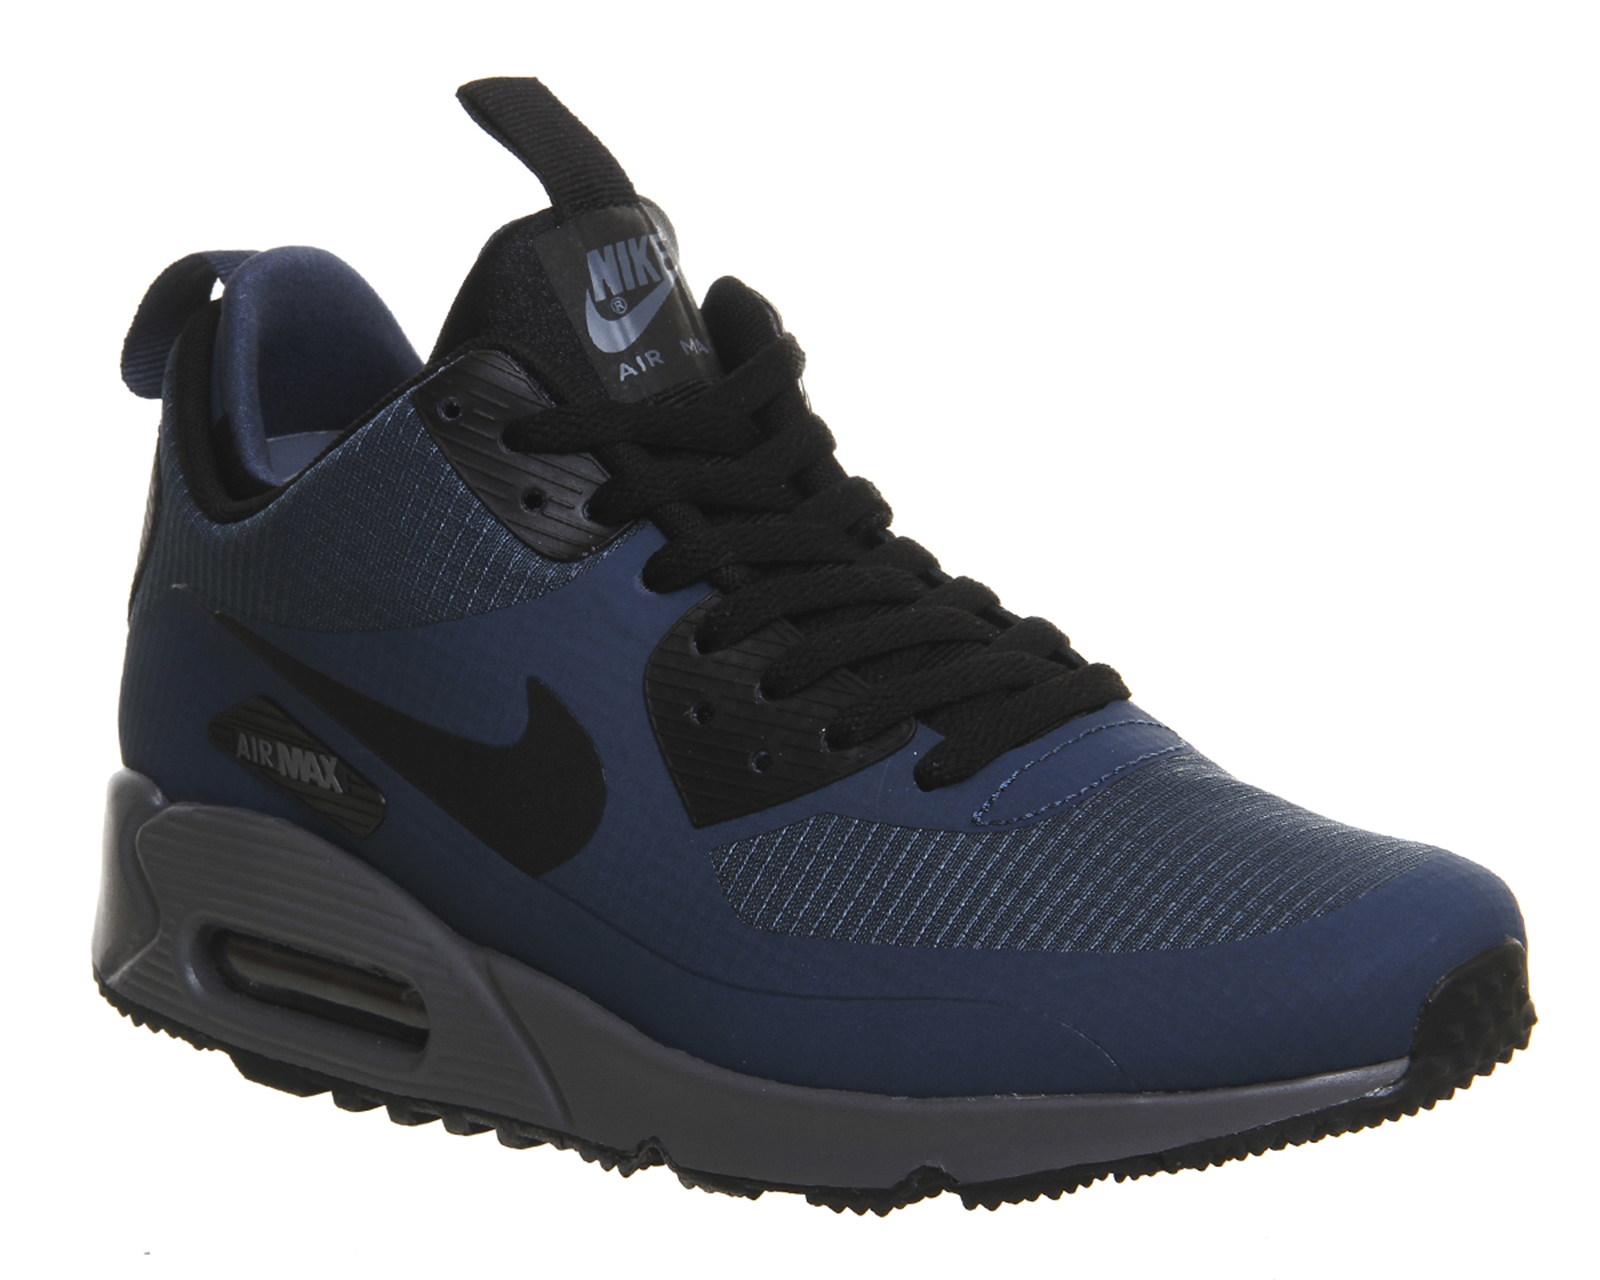 nike air max 90 mid winter in blue for men lyst. Black Bedroom Furniture Sets. Home Design Ideas